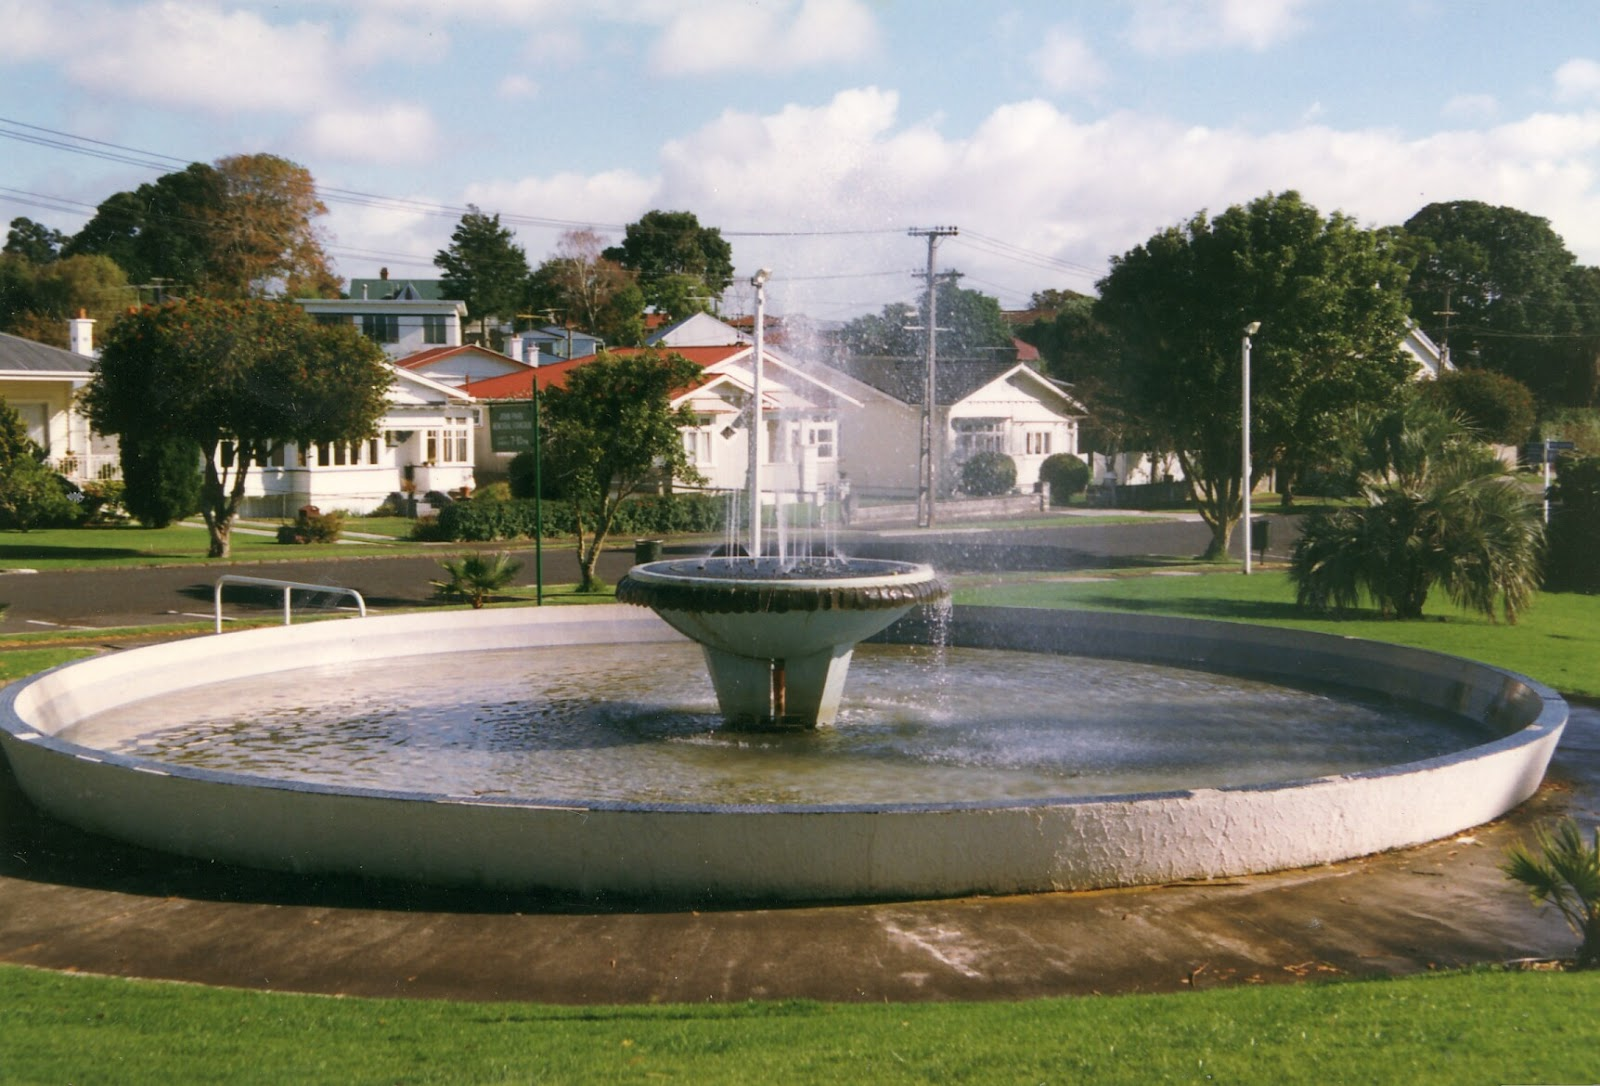 Water fountains auckland - John Park Obviously Made An Impression In Onehunga Since He Has His Own Fountain He Was An Architect And The Mayor Of Onehunga Multiple Times